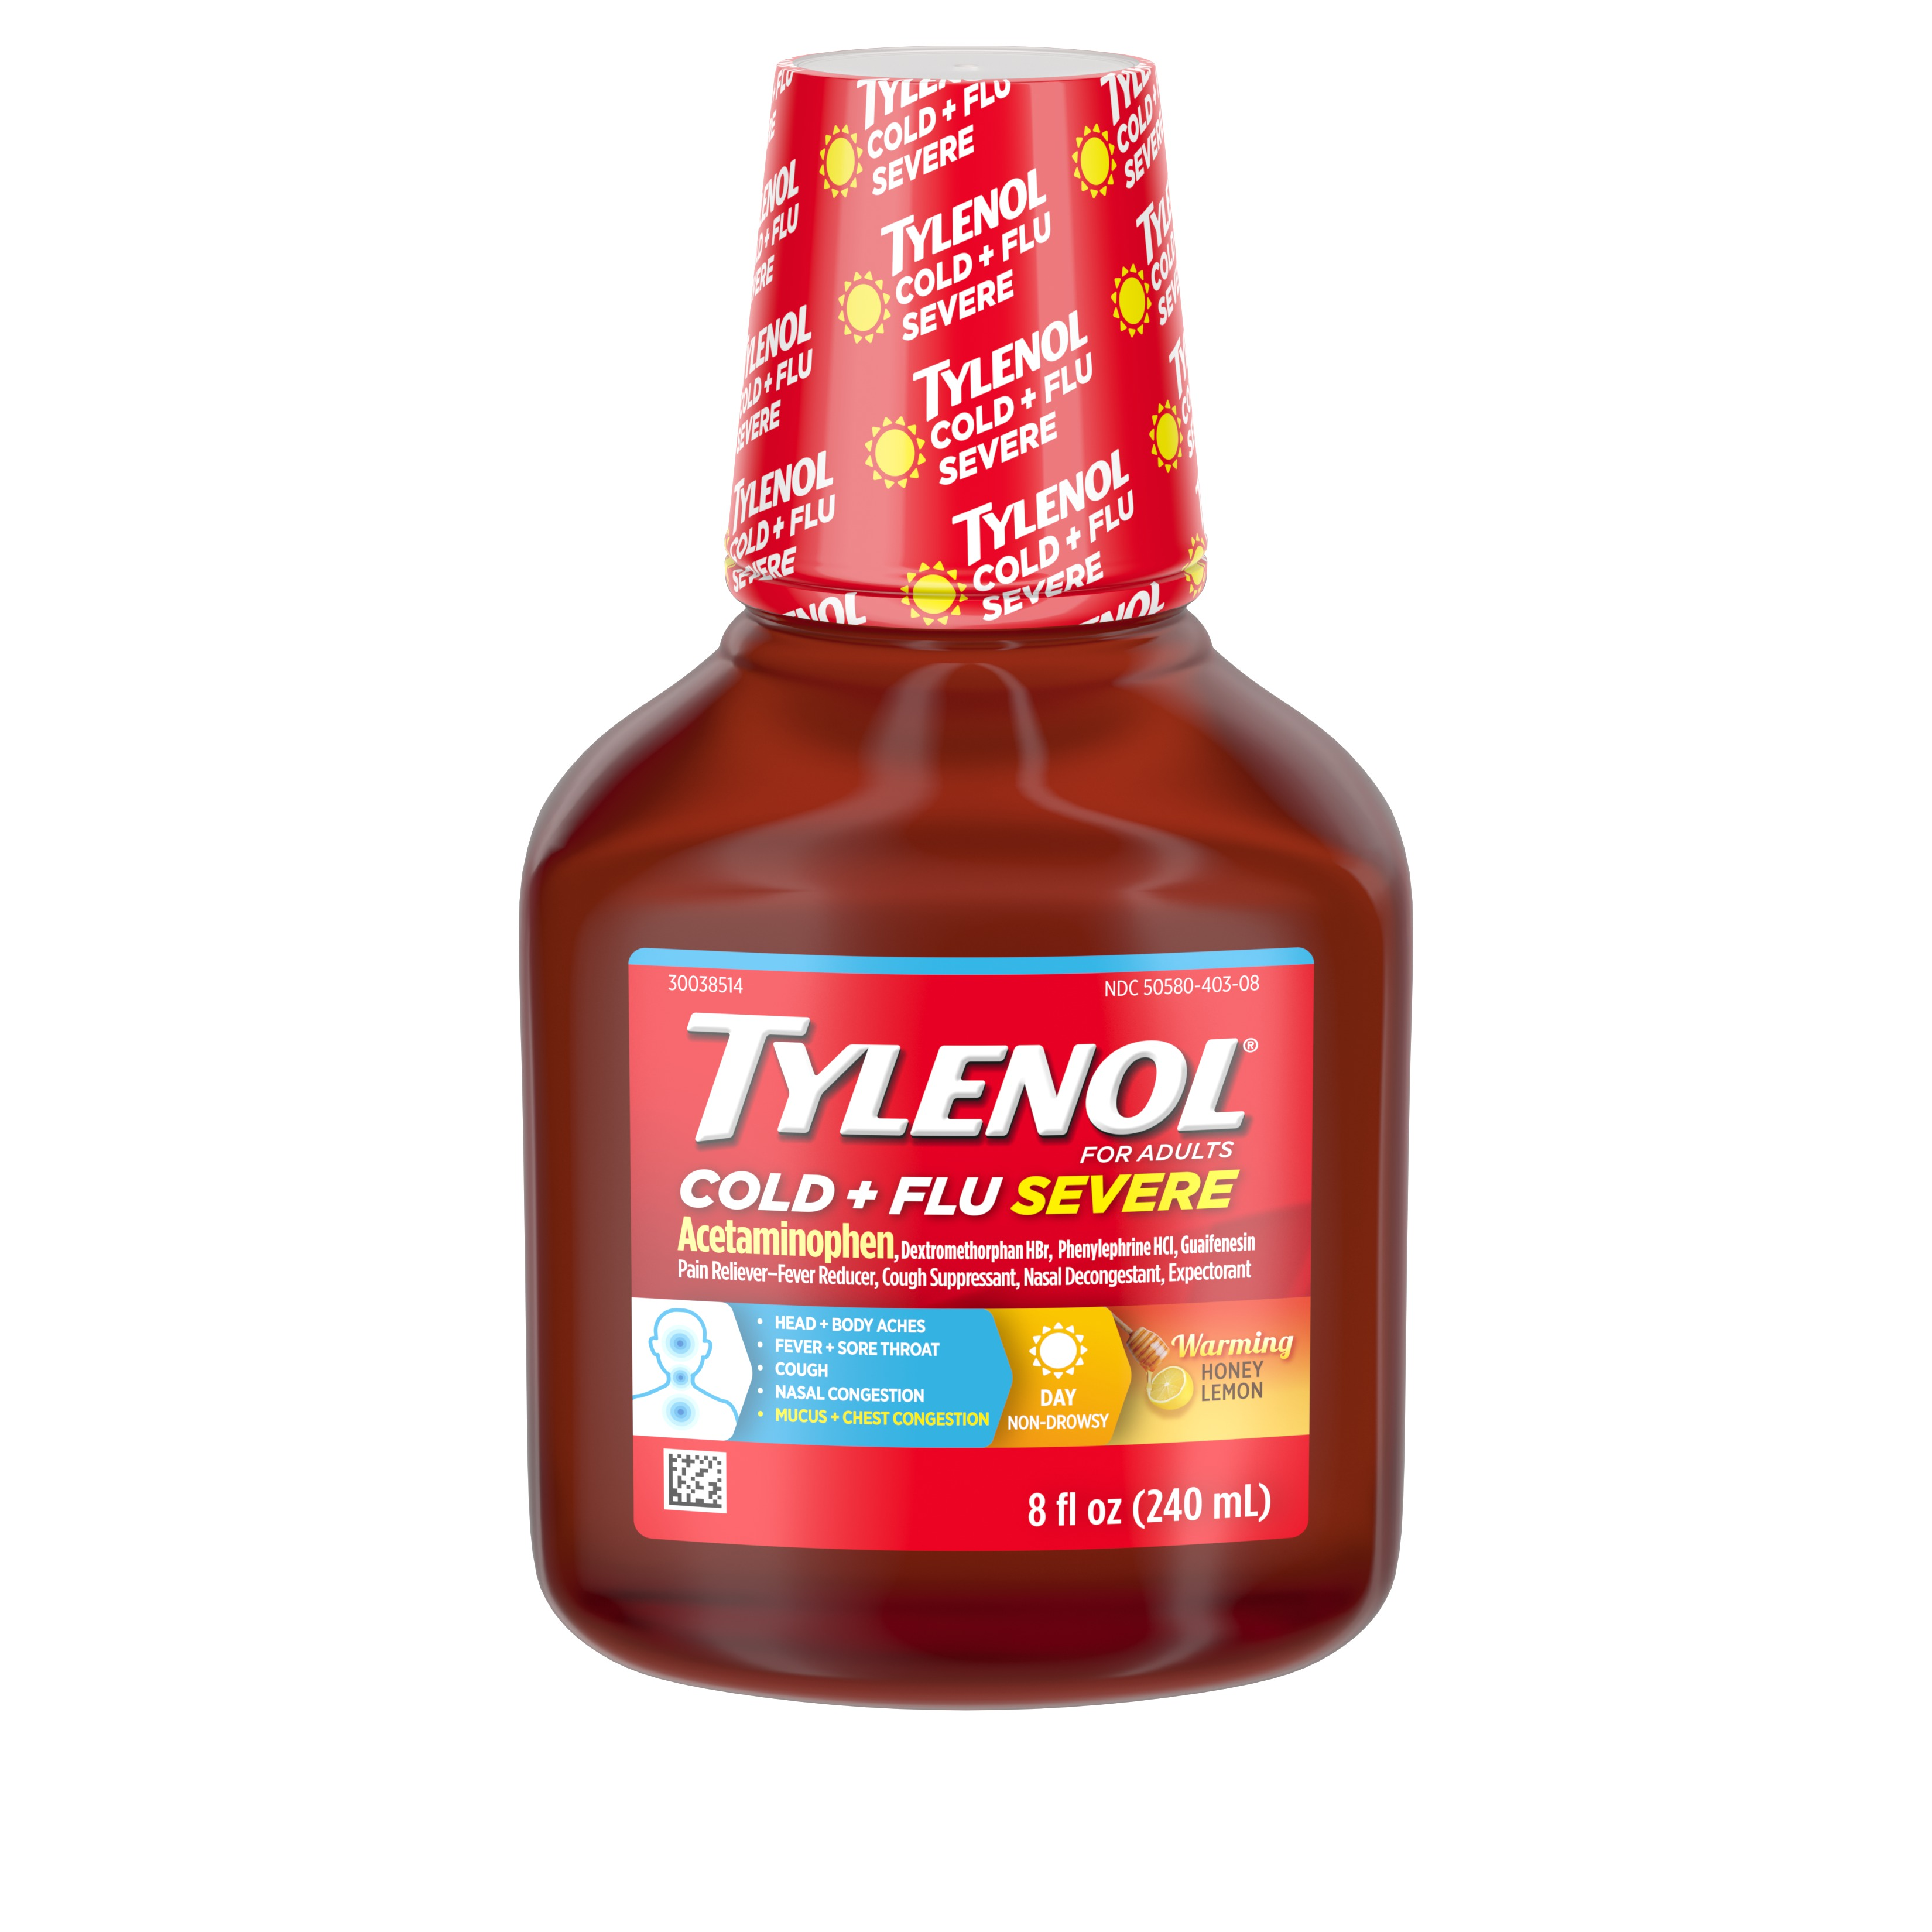 Tylenol Cold + Flu Severe Flu Medicine, Honey Lemon Flavor, 8 fl. oz